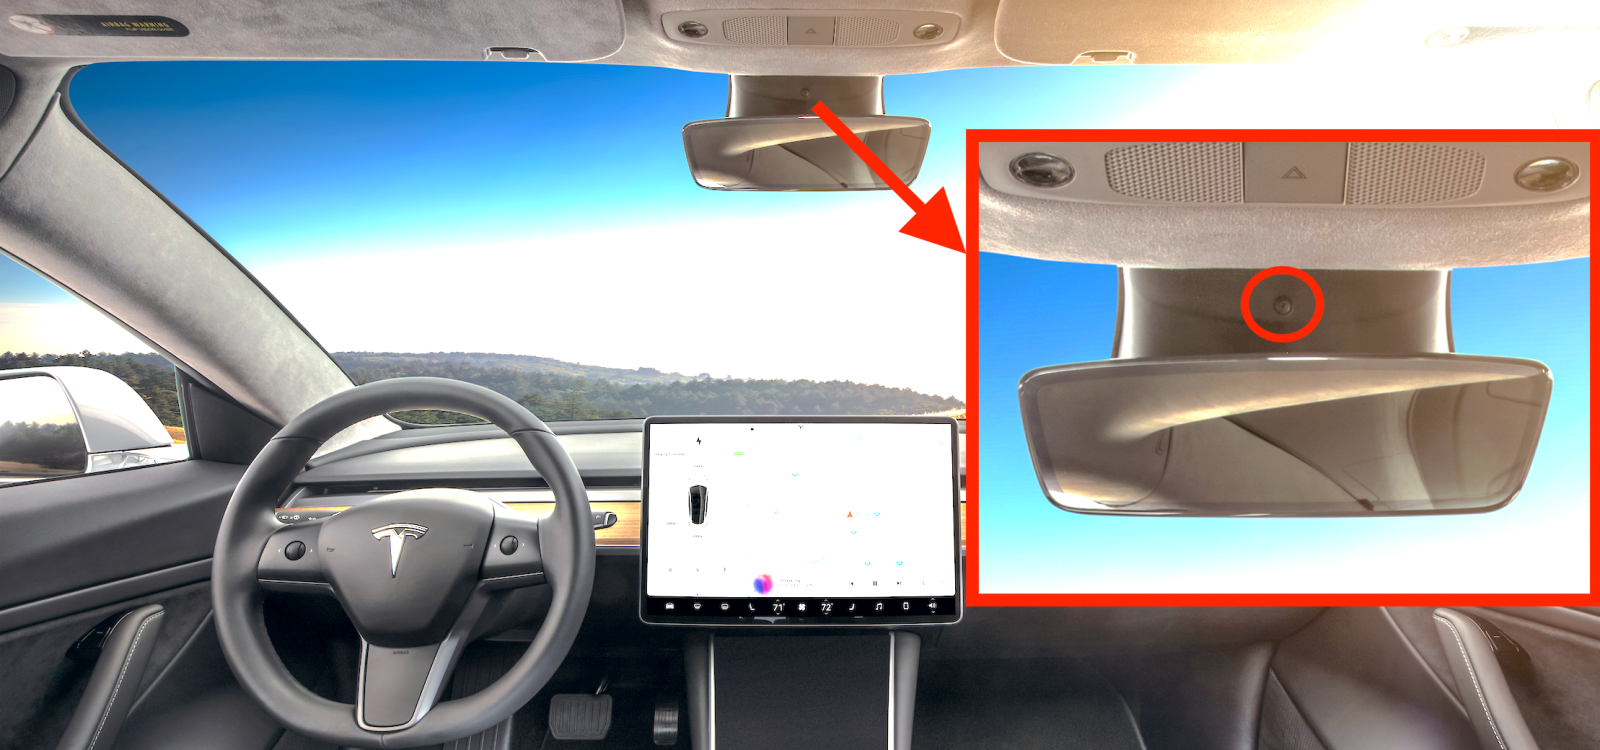 Tesla Model 3 is equipped with a driver-facing camera for Autopilot and Tesla Network